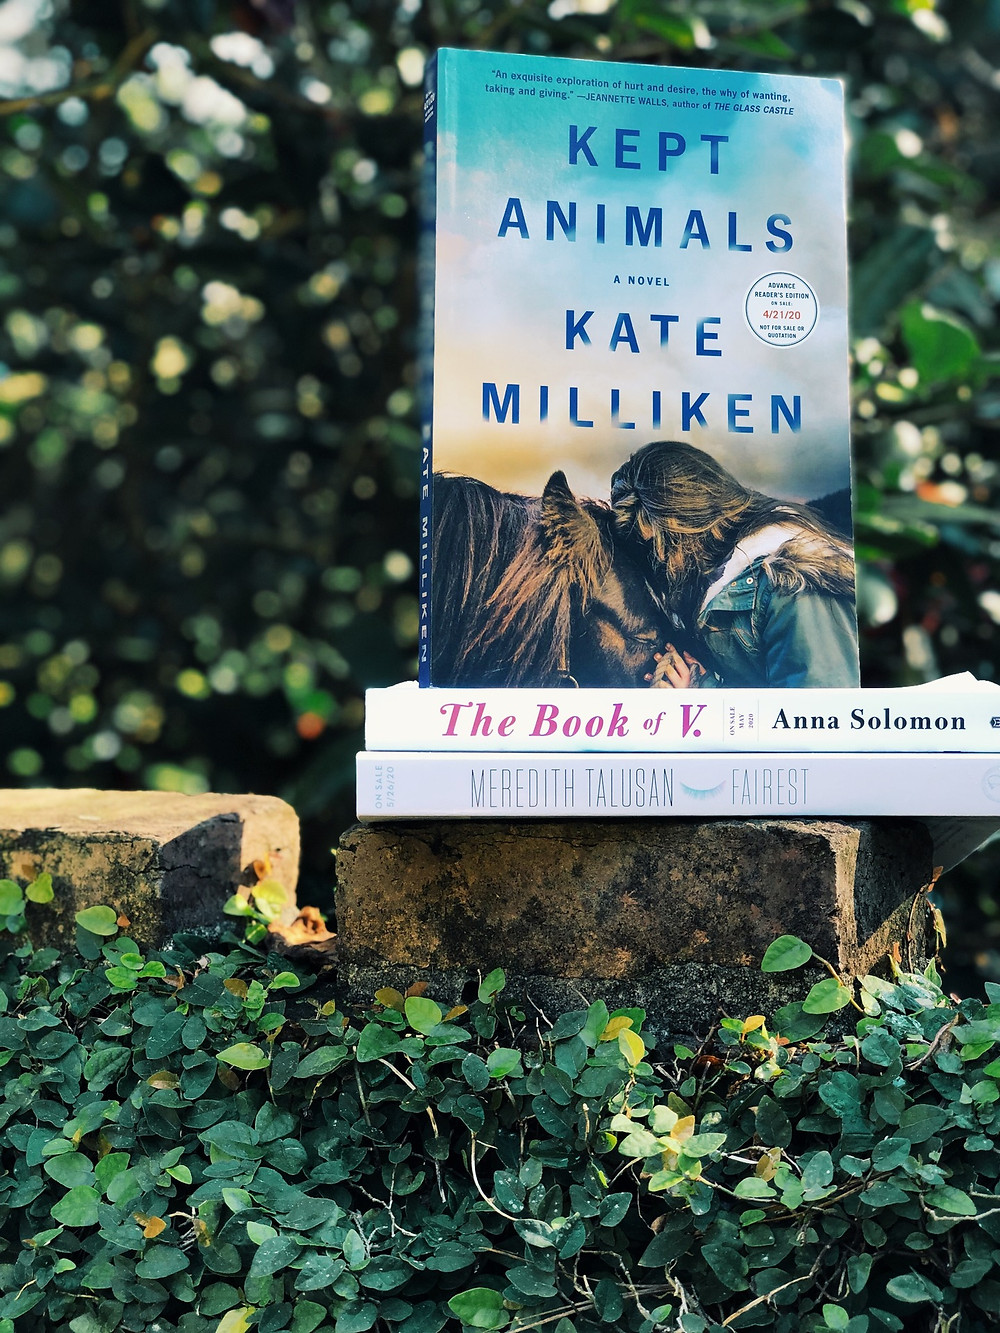 Kept Animals stands atop a couple of other books in an outdoor space.